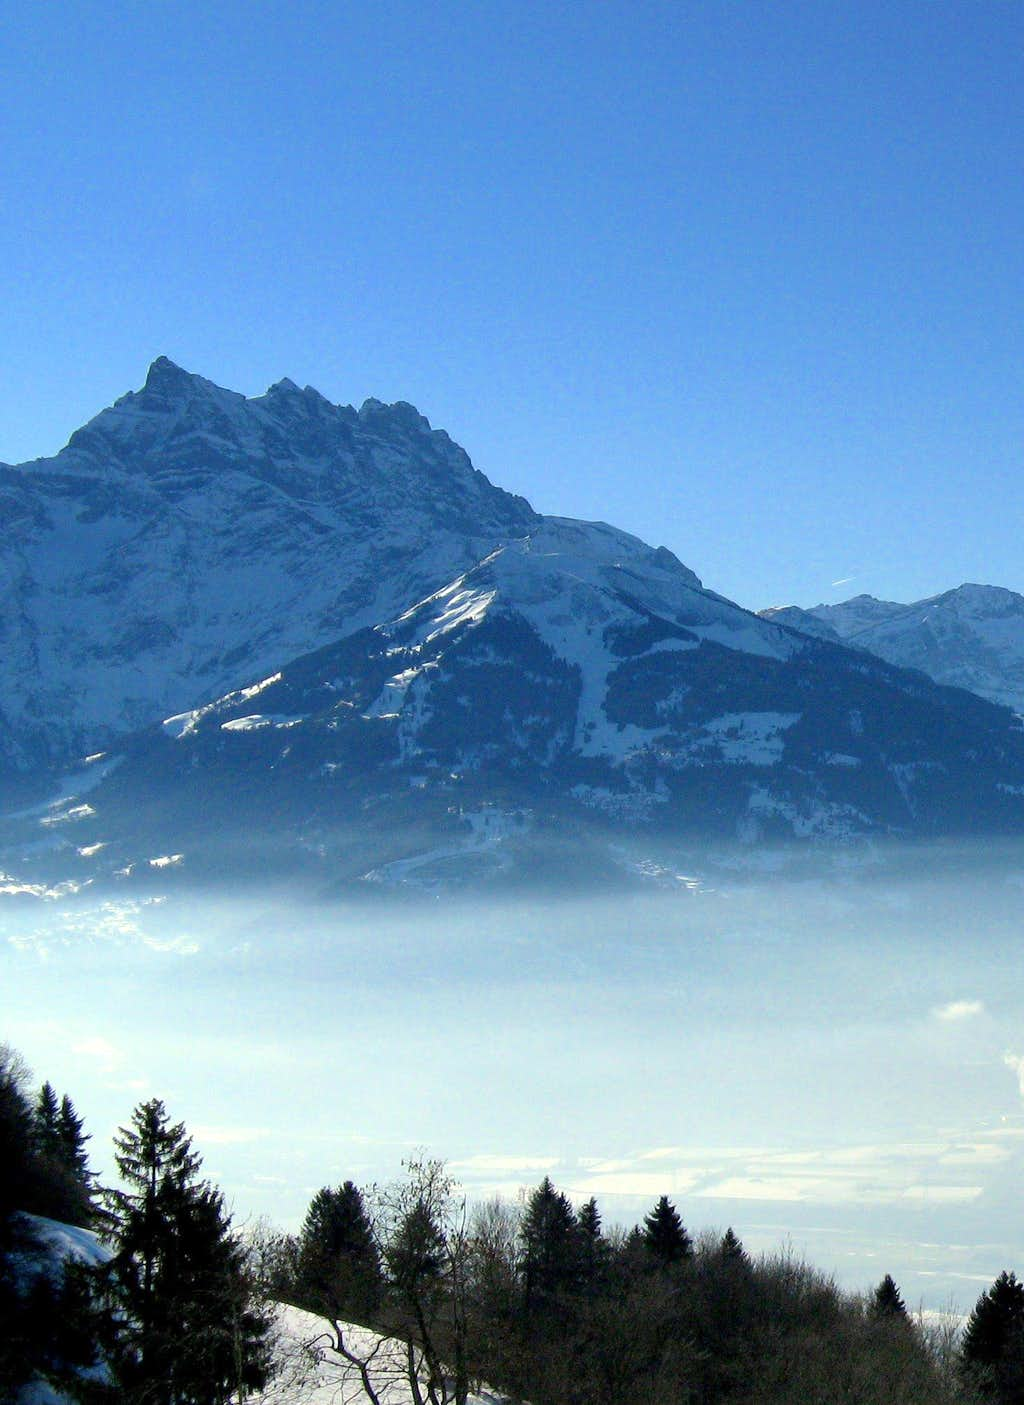 Cloud carpet beneath Dents du Midi